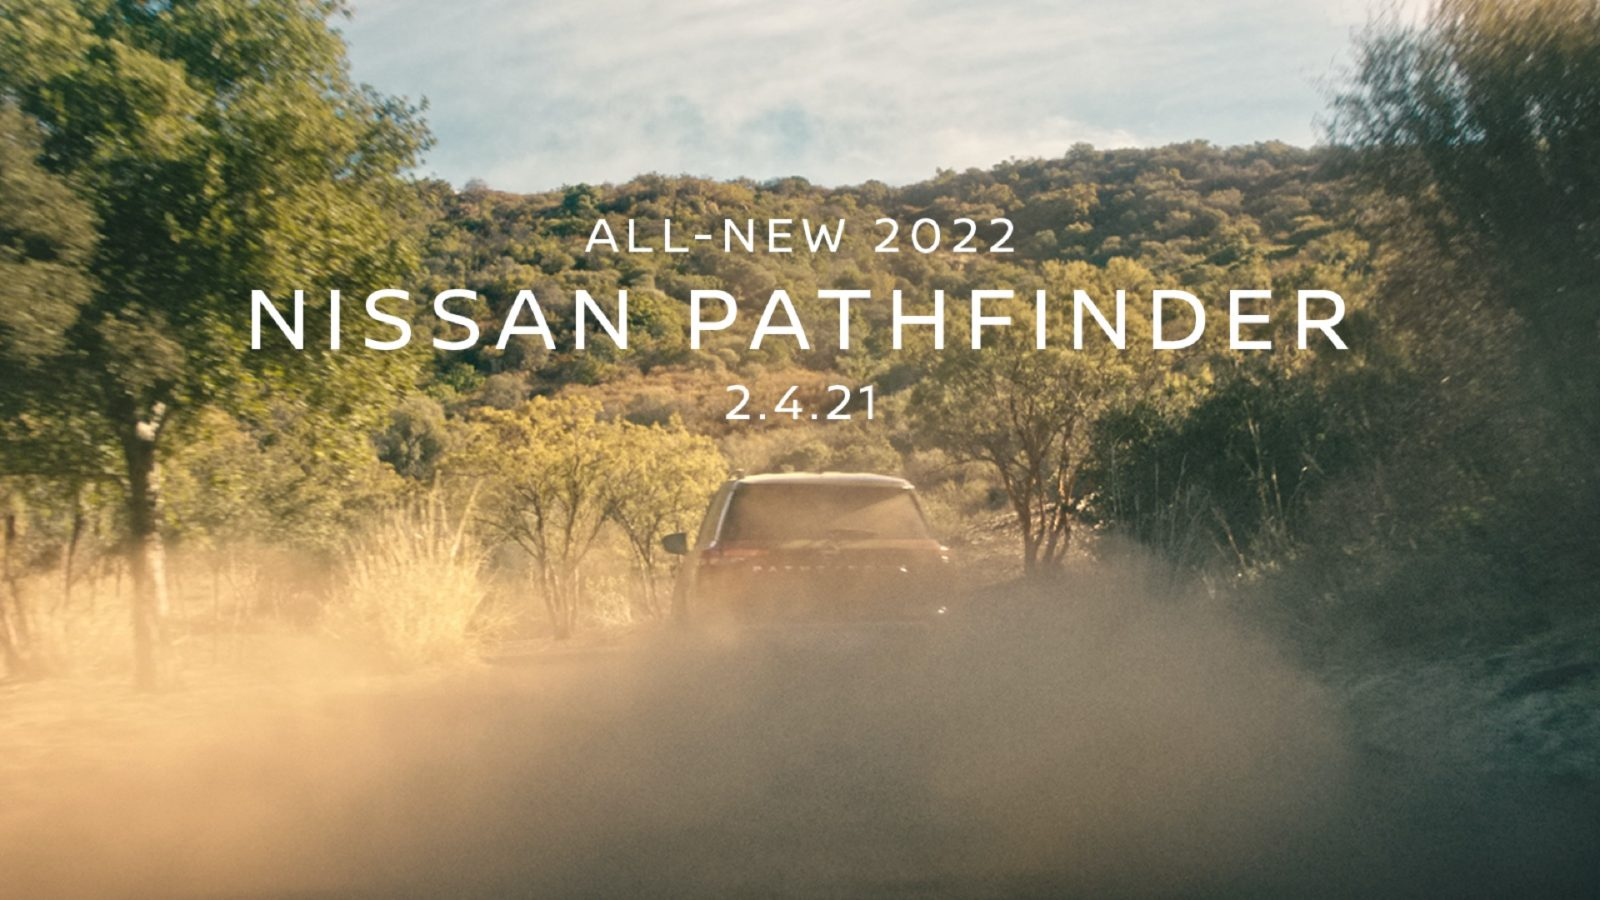 nissan-pathfinder-skips-2021-model-year-in-advance-of-2022-redesign